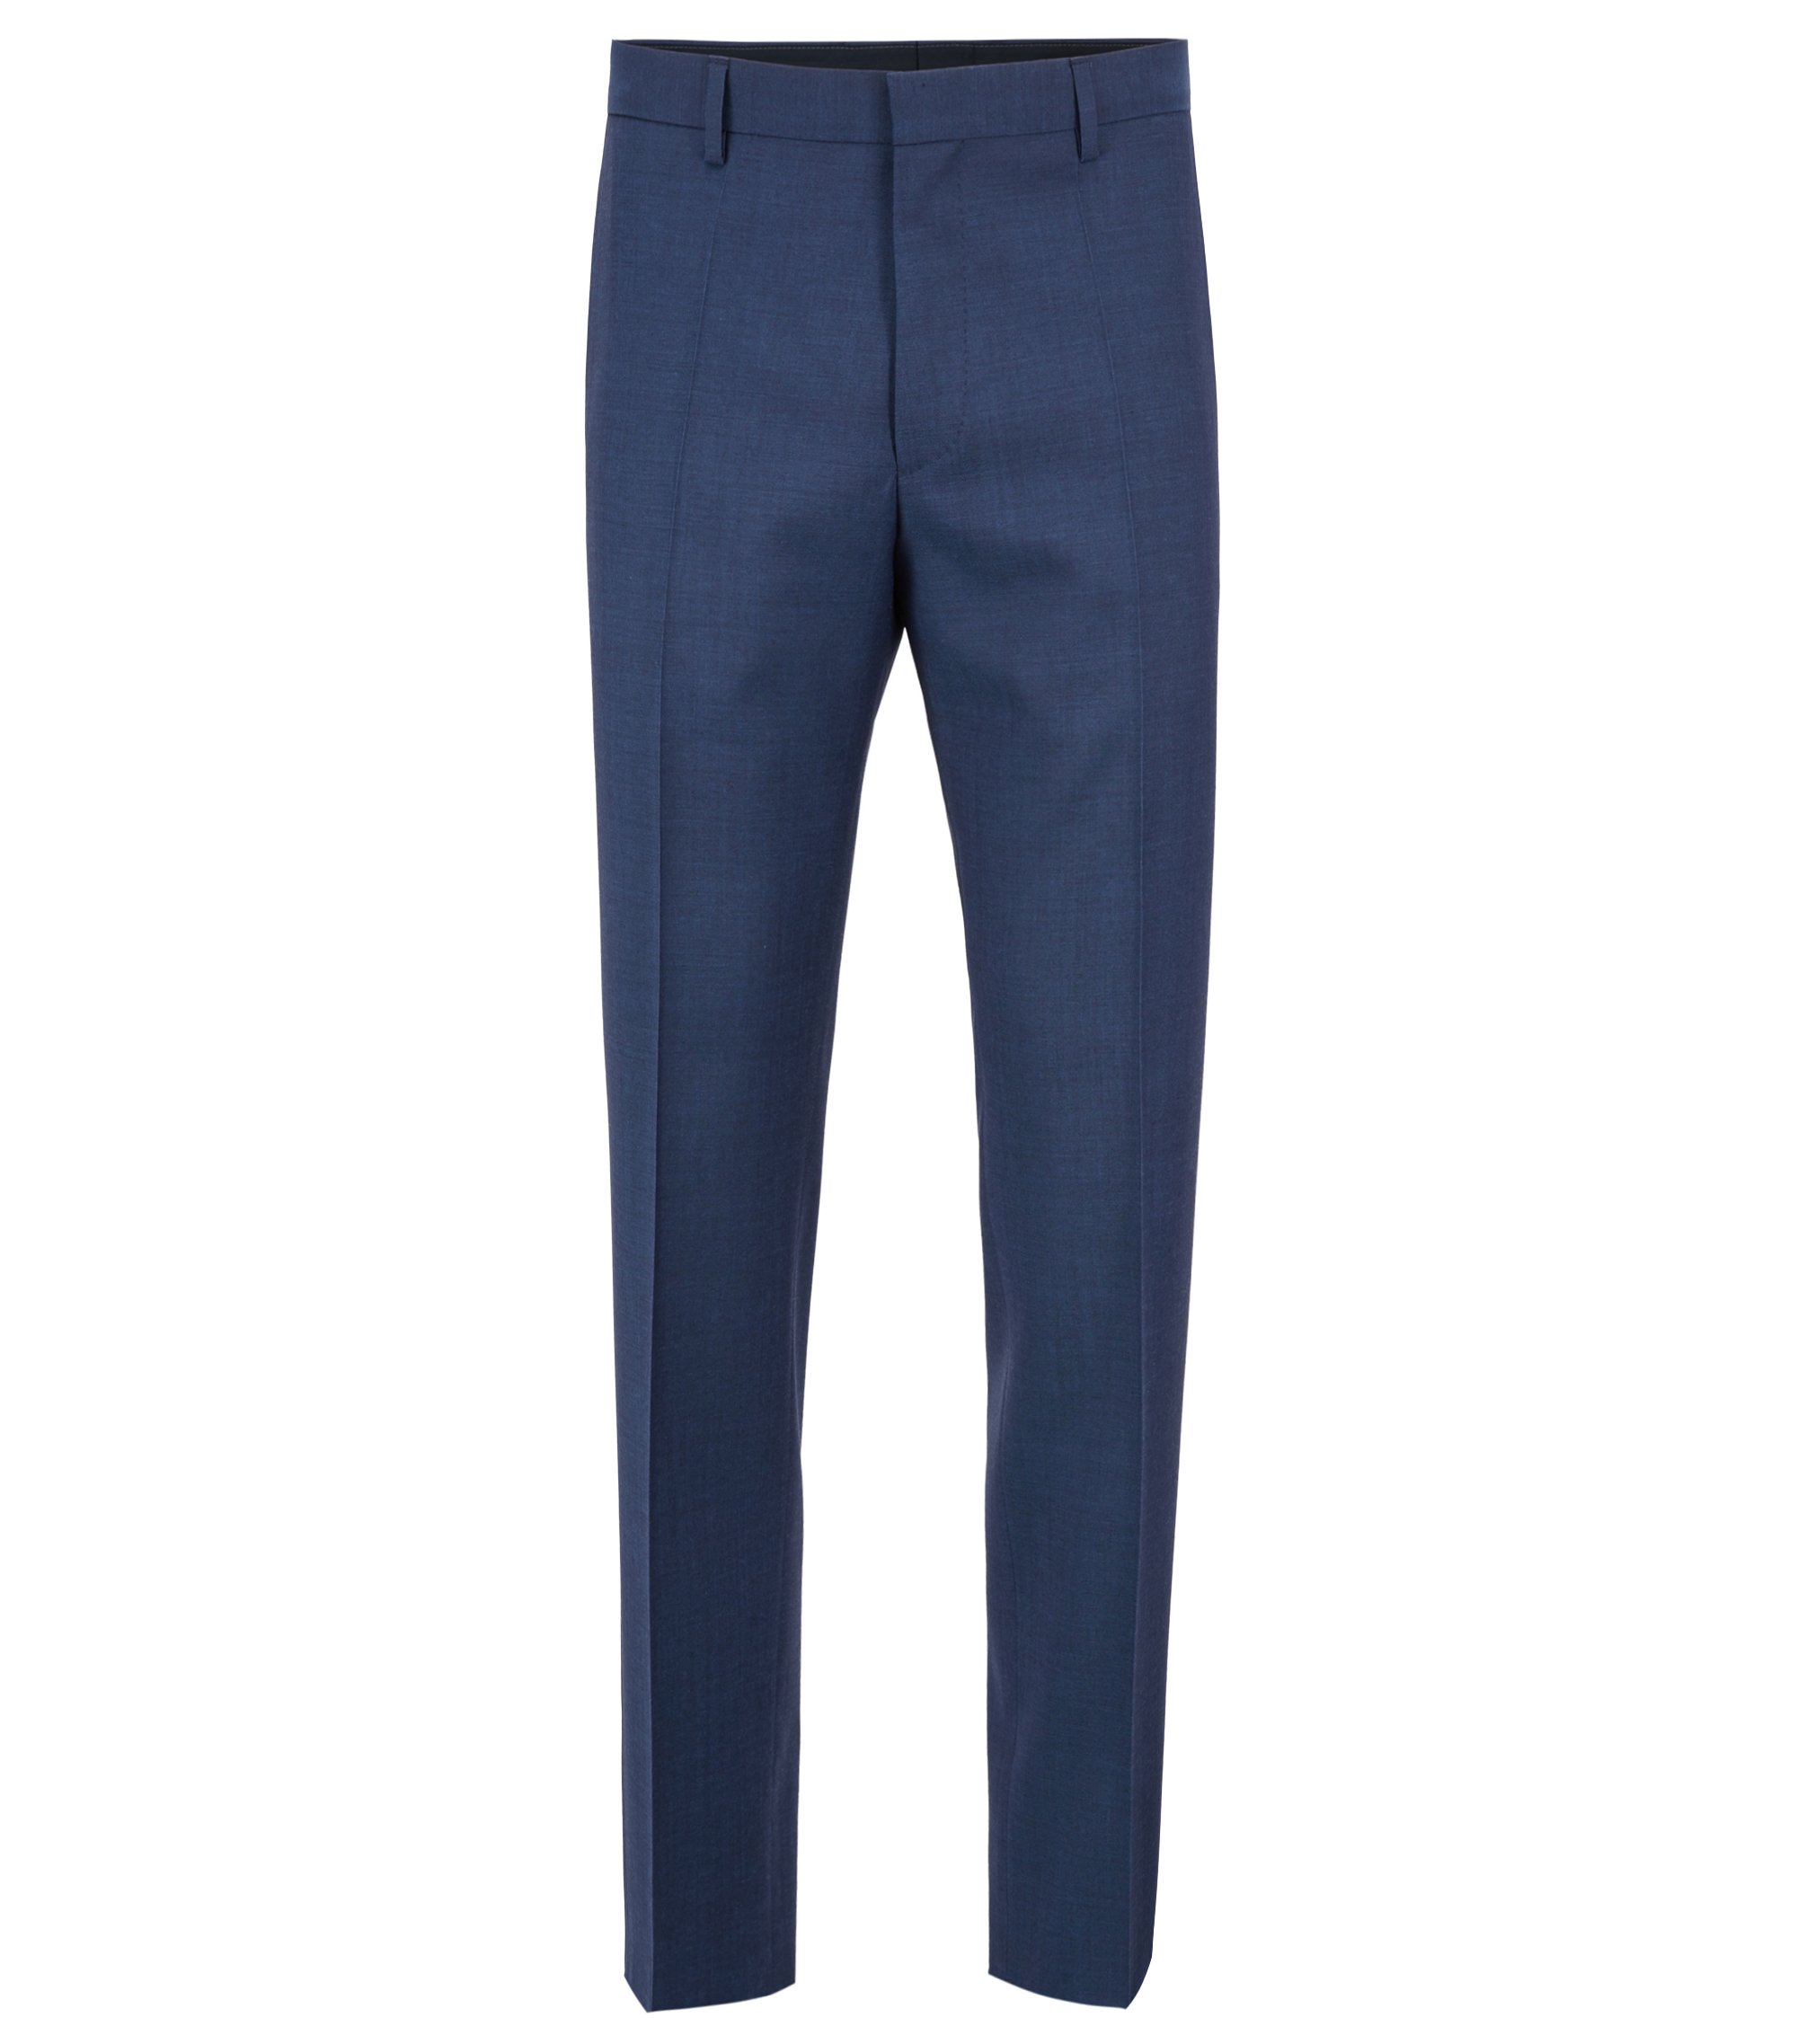 Slim-fit pants in mohair-look virgin wool, Open Blue